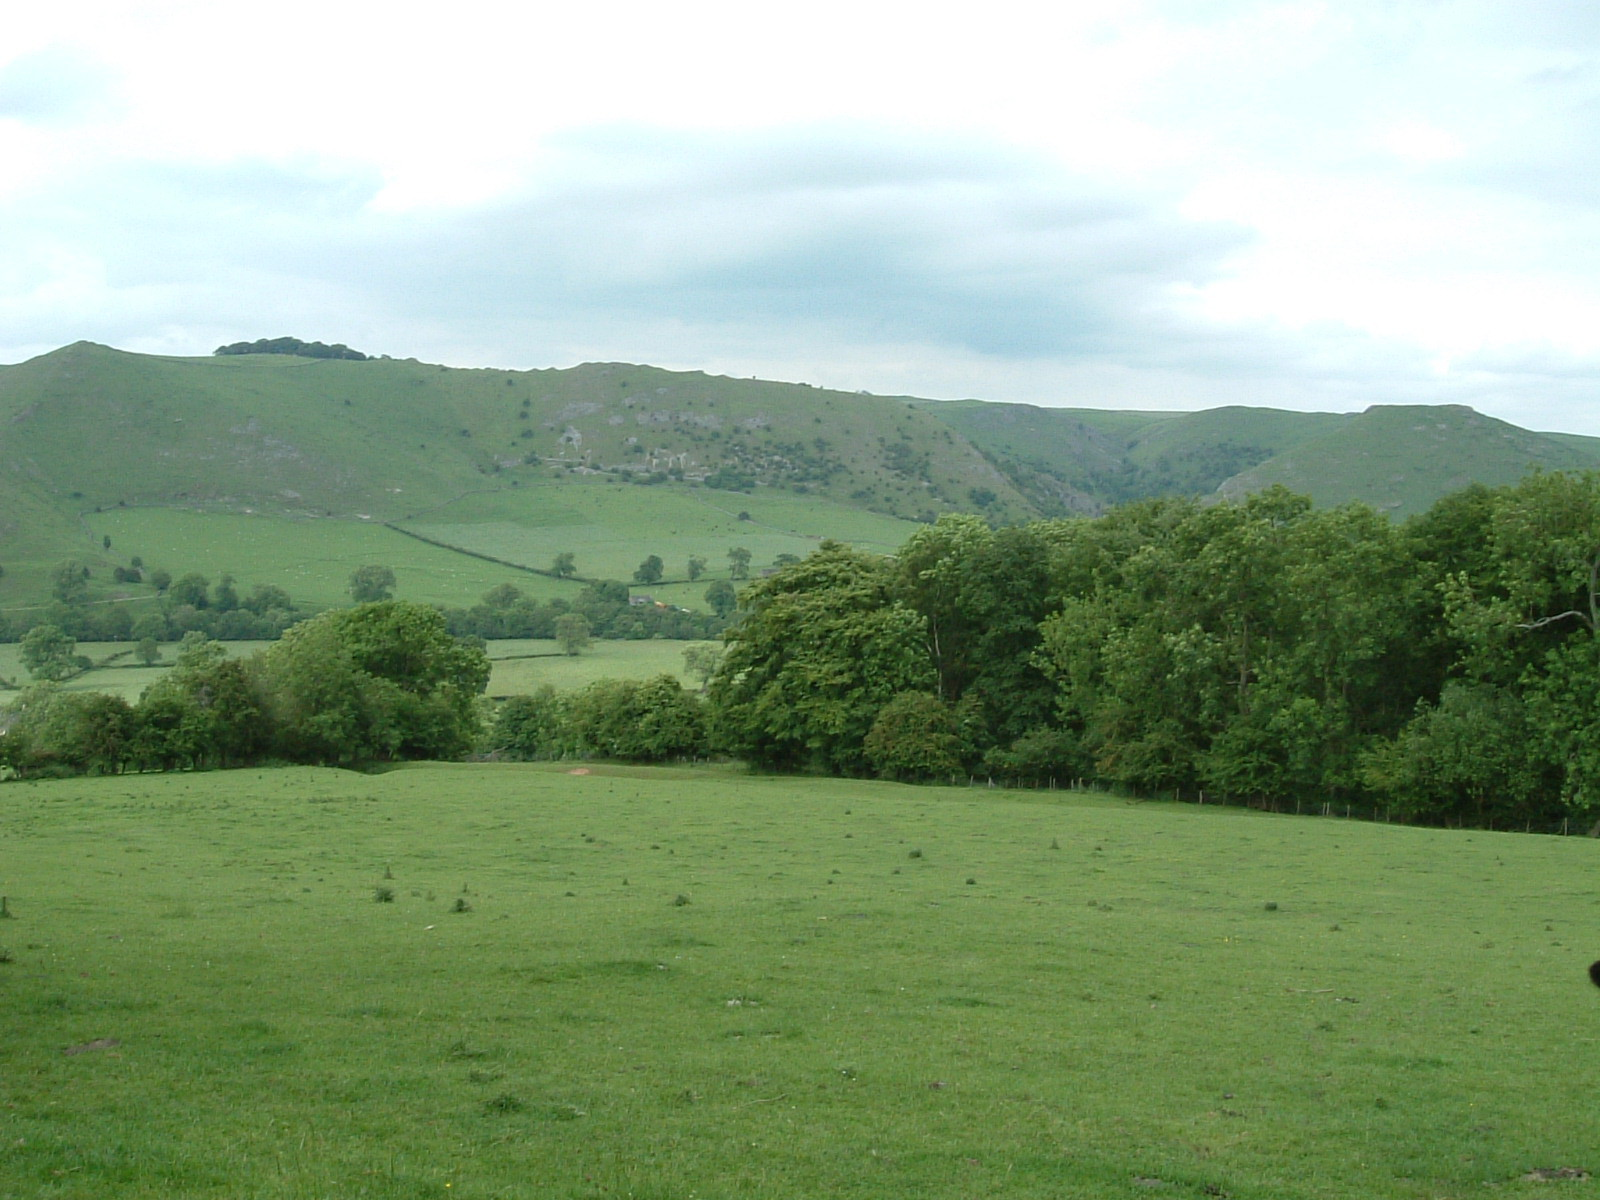 Dovedale from a distance